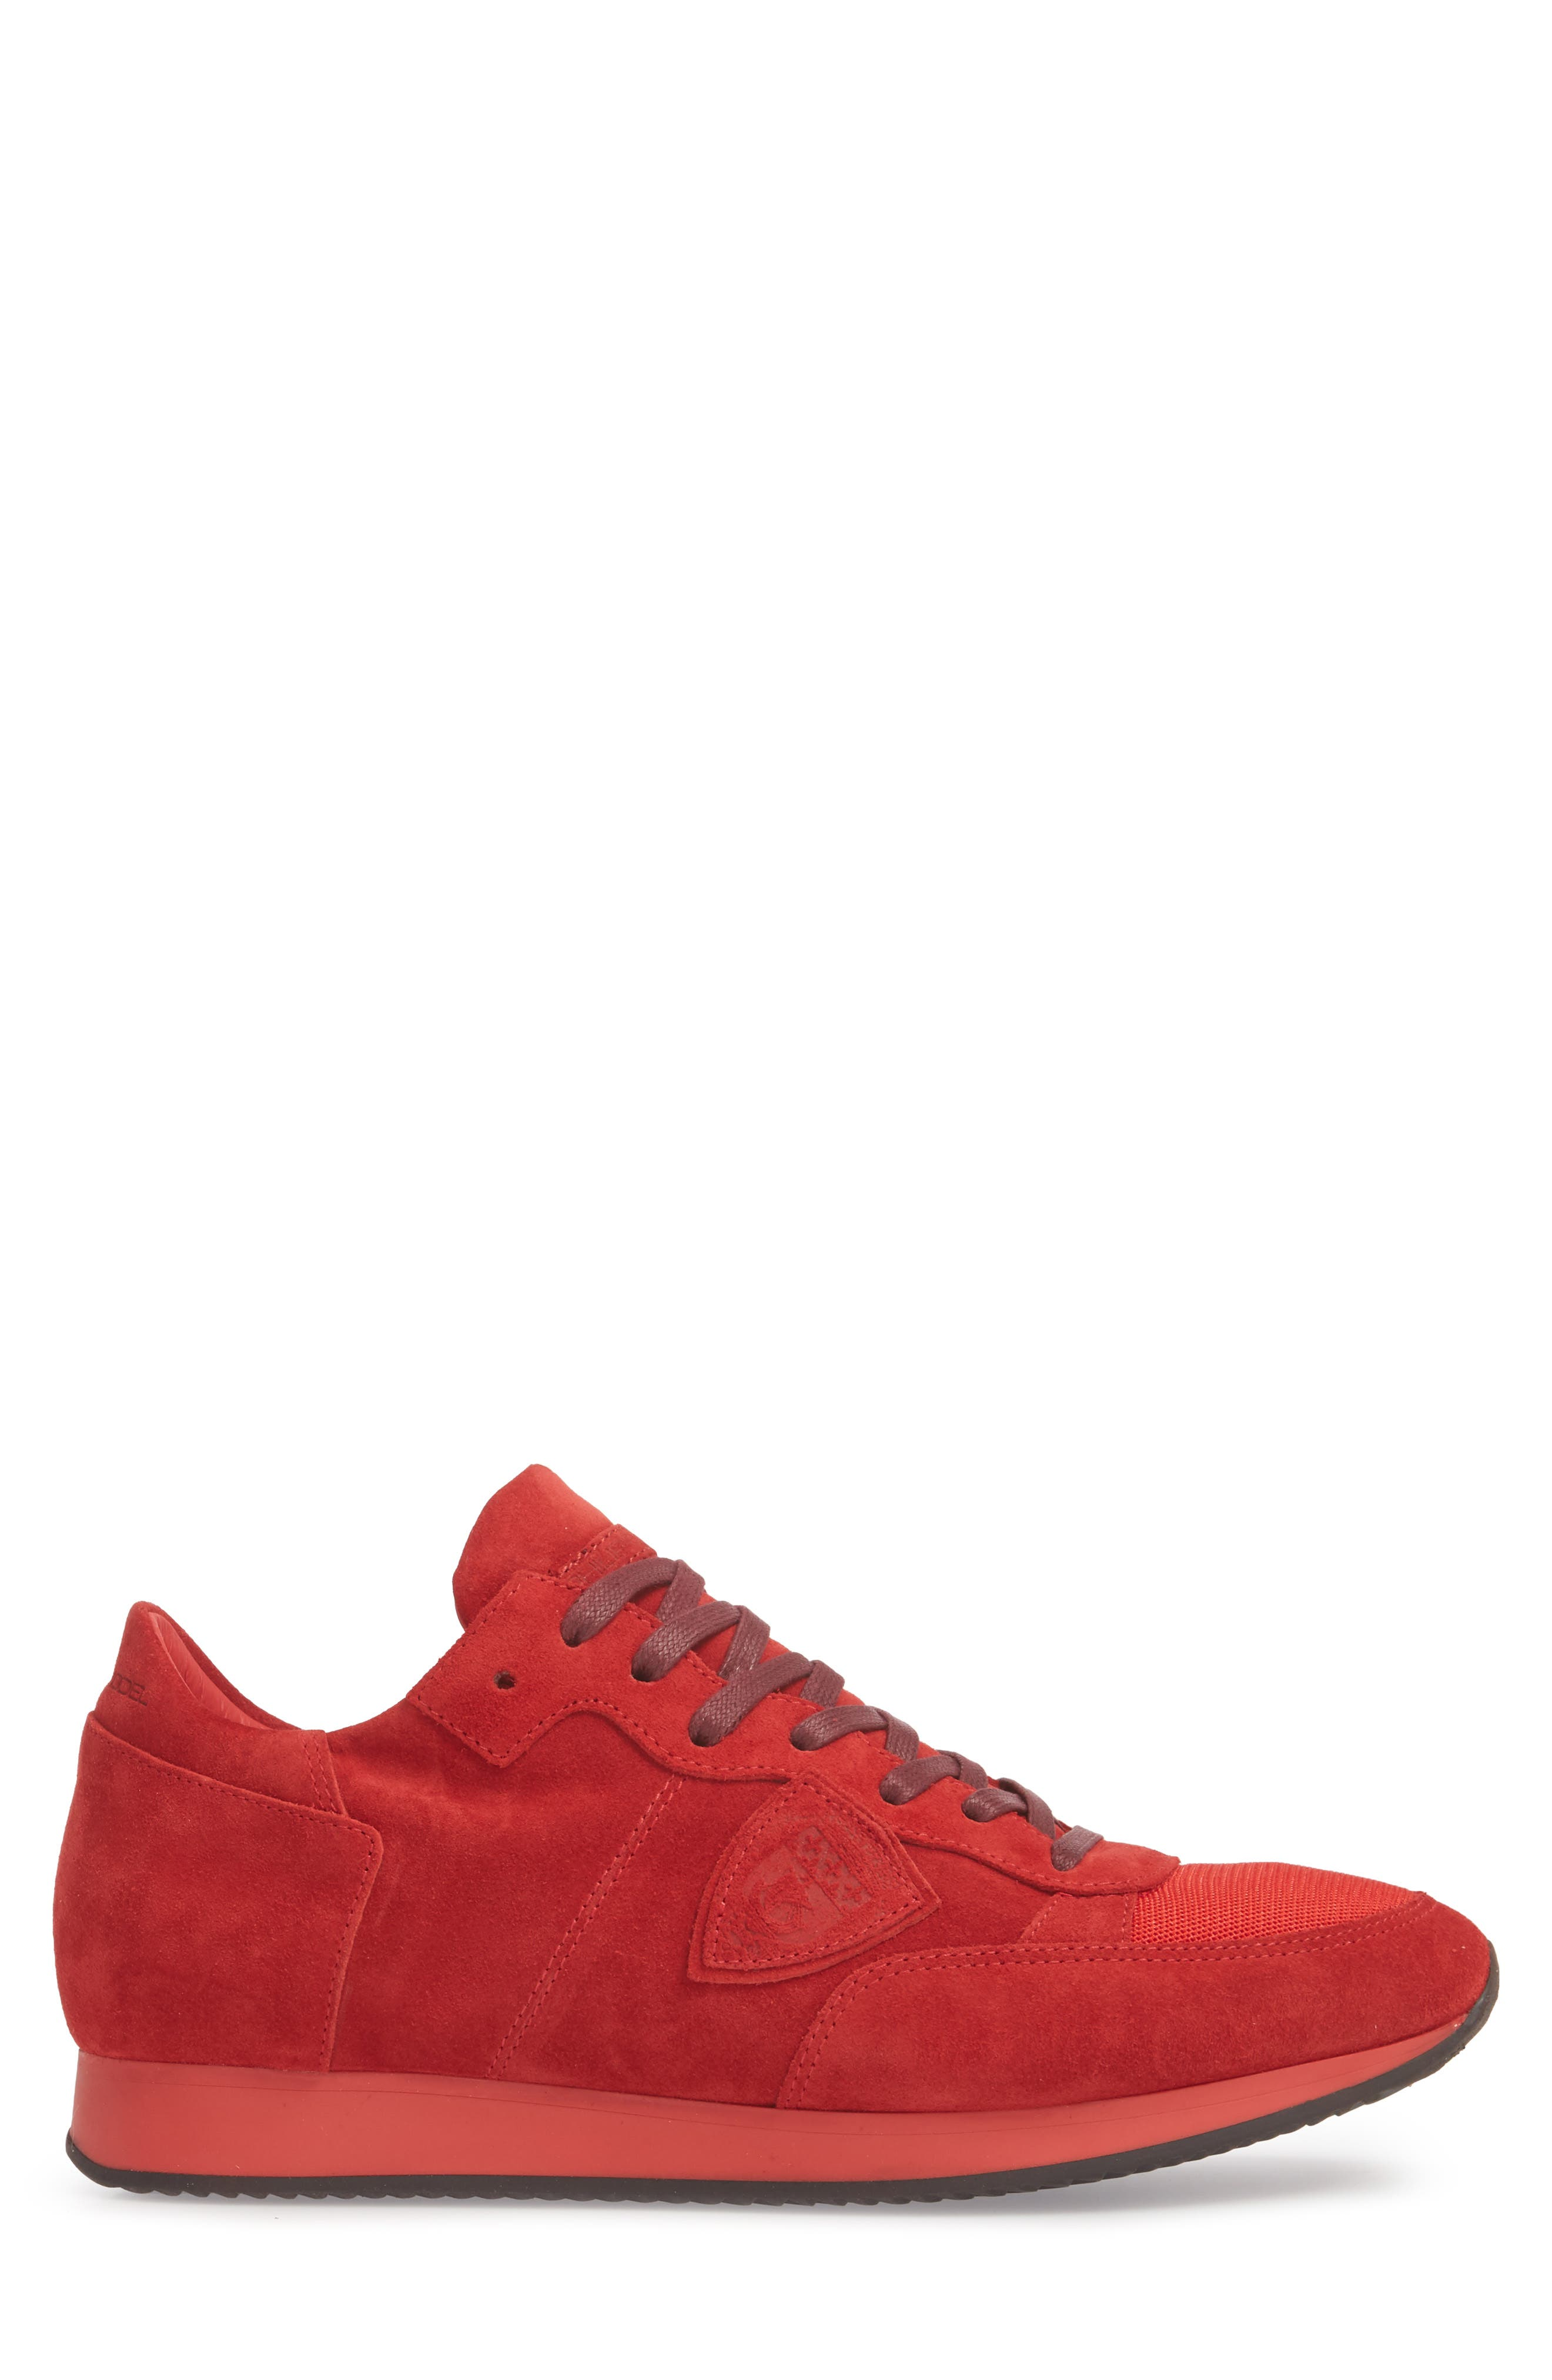 Tropez Low Top Sneaker,                             Alternate thumbnail 3, color,                             Red Suede